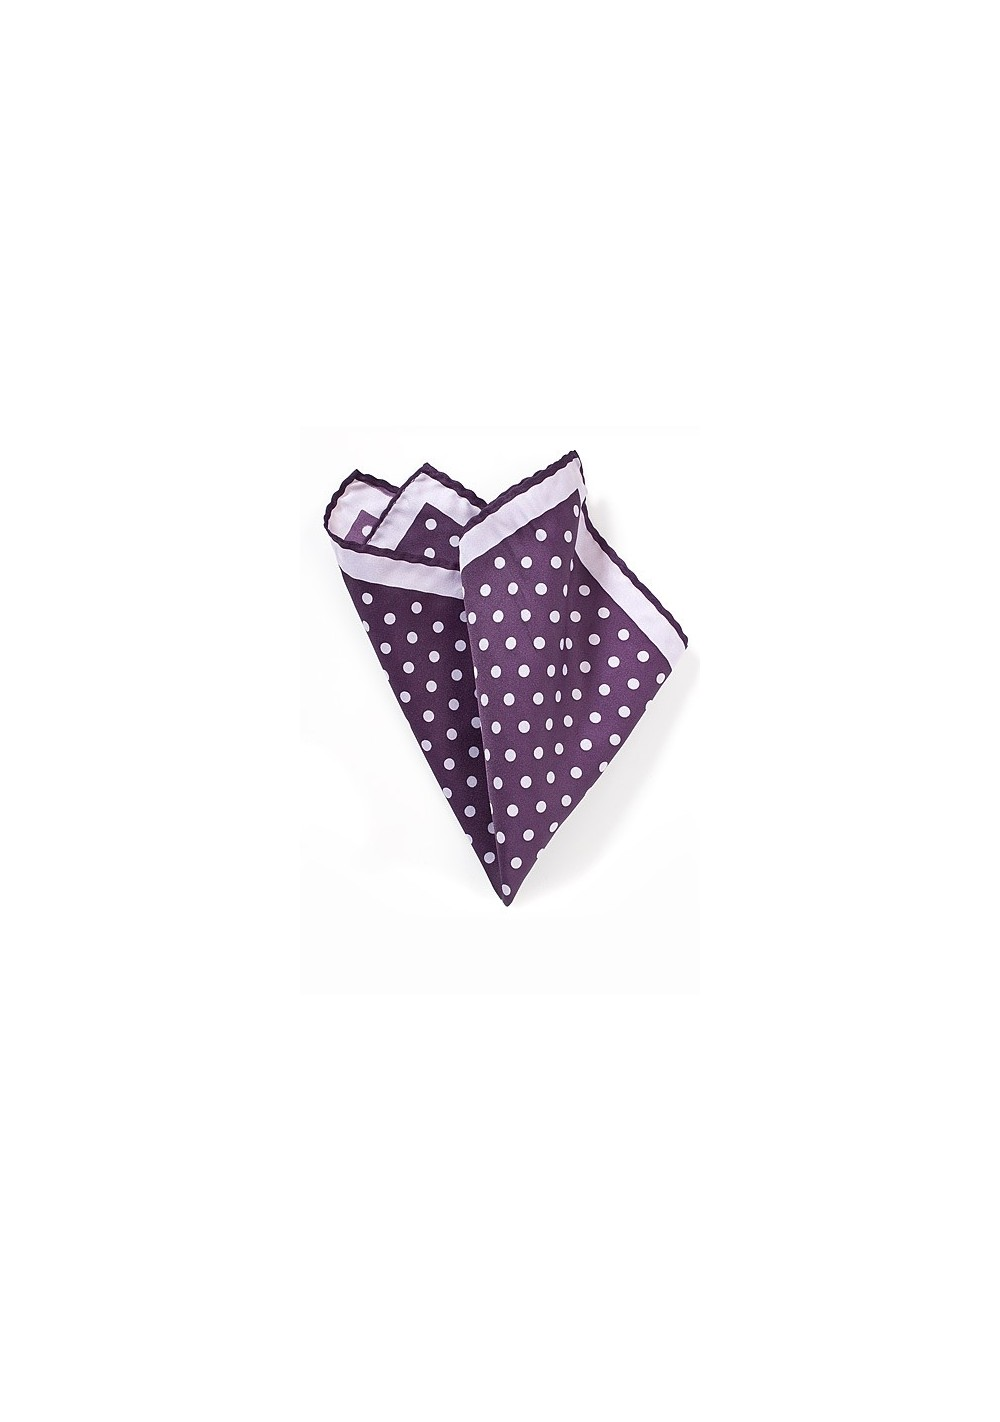 Purple and Lavender Polka Dot Pocket Square